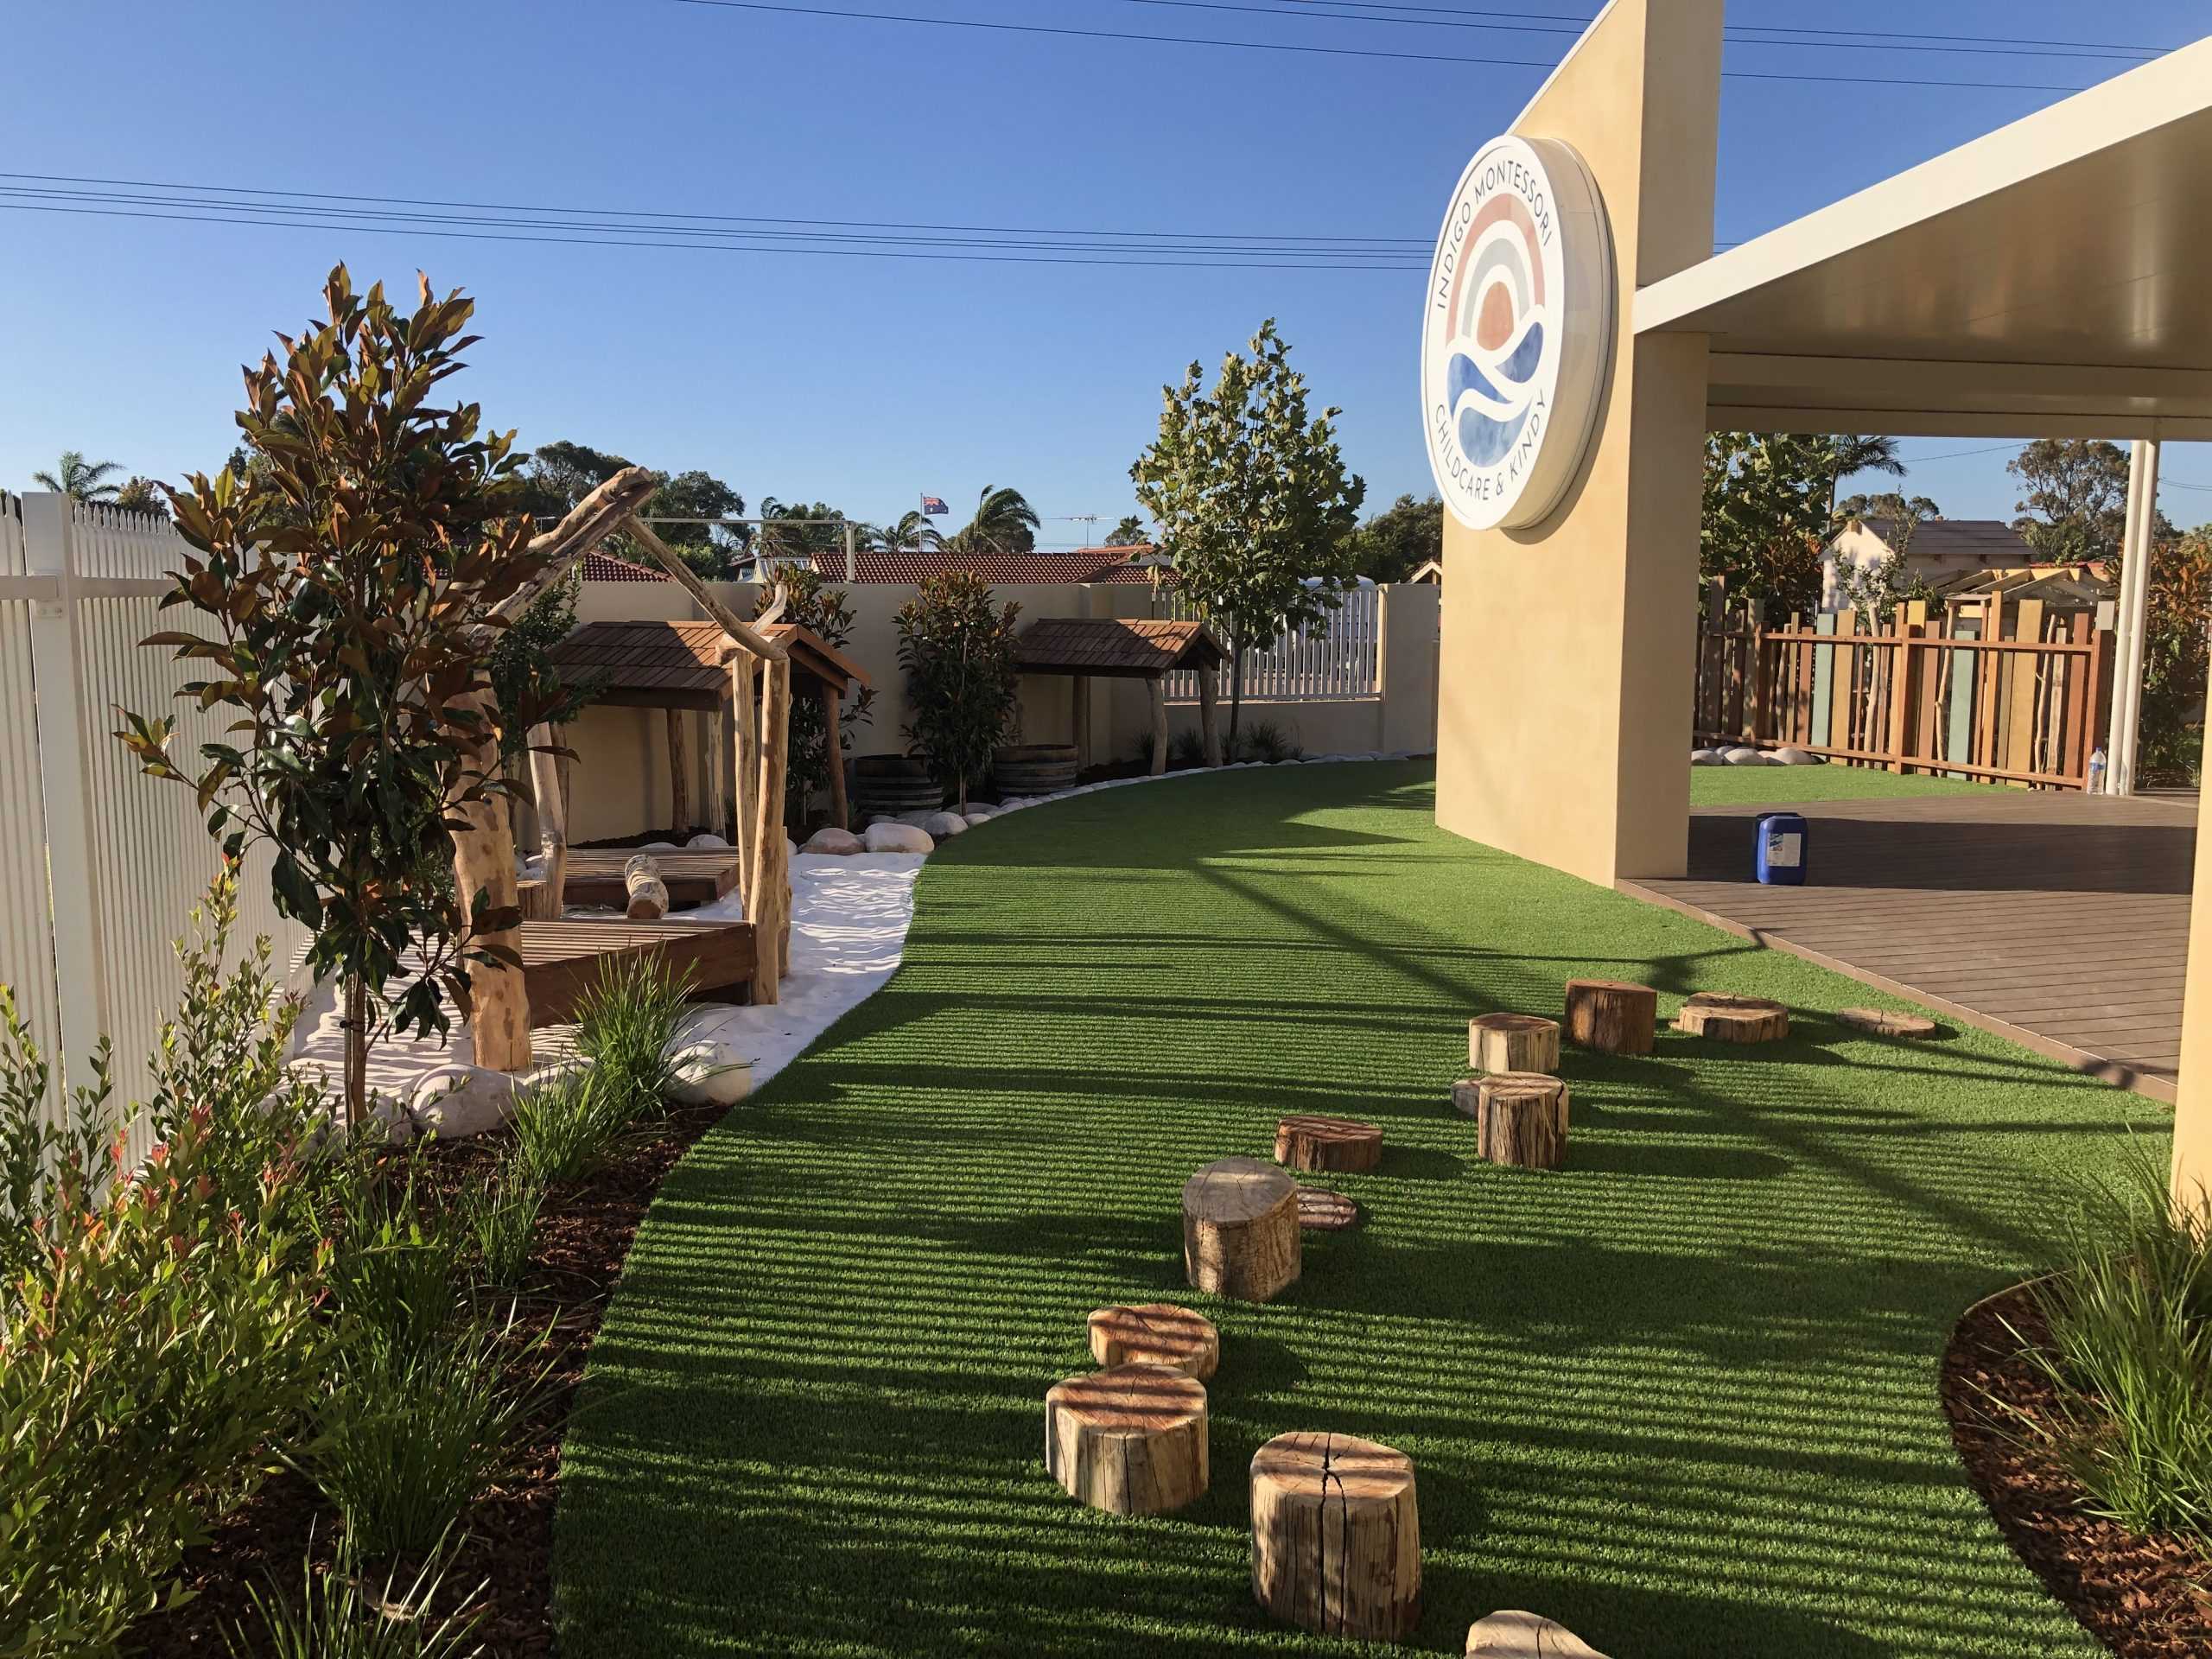 Turf Installation at Mulberry Childcare